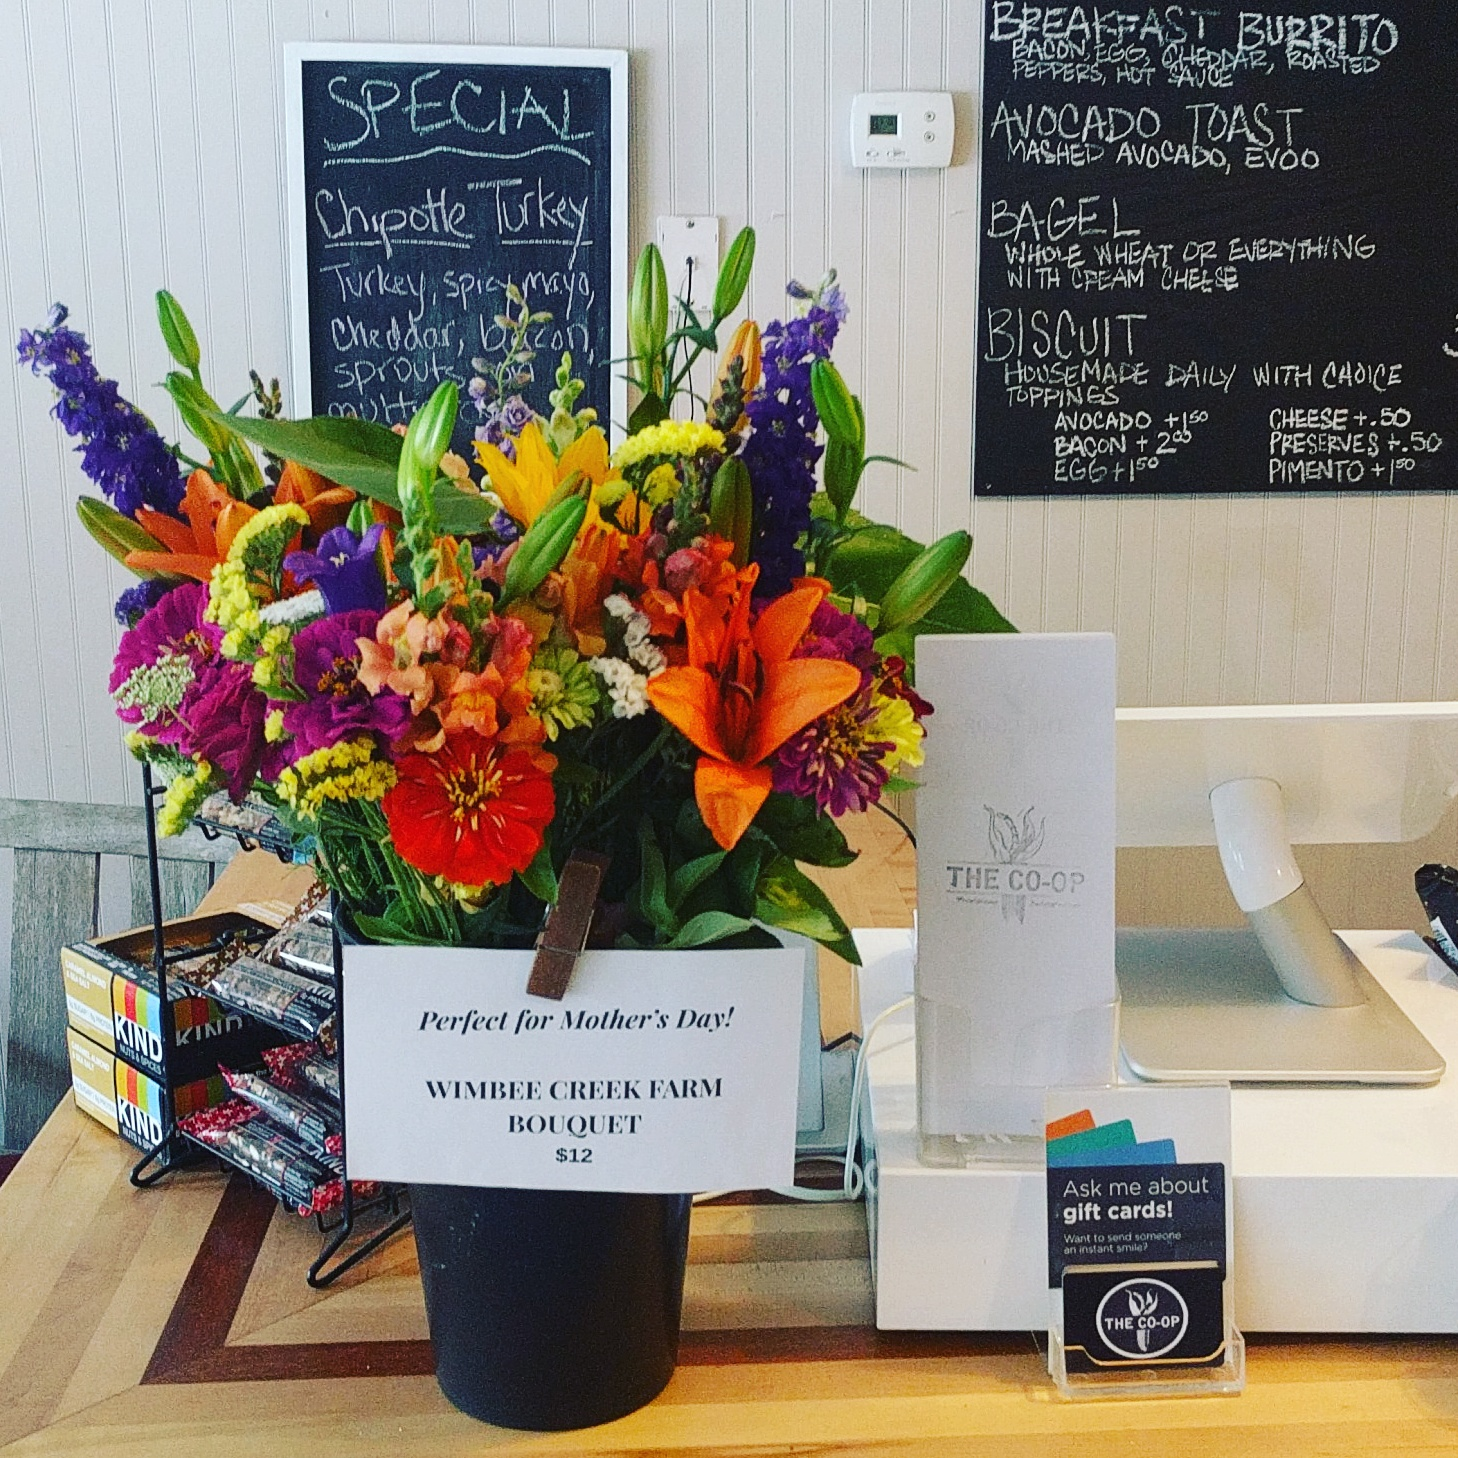 Now offering fresh local flower bouquets from Wimbee Creek Farms! Also available for delivery to beach stations and local Sullivan's Island residents.